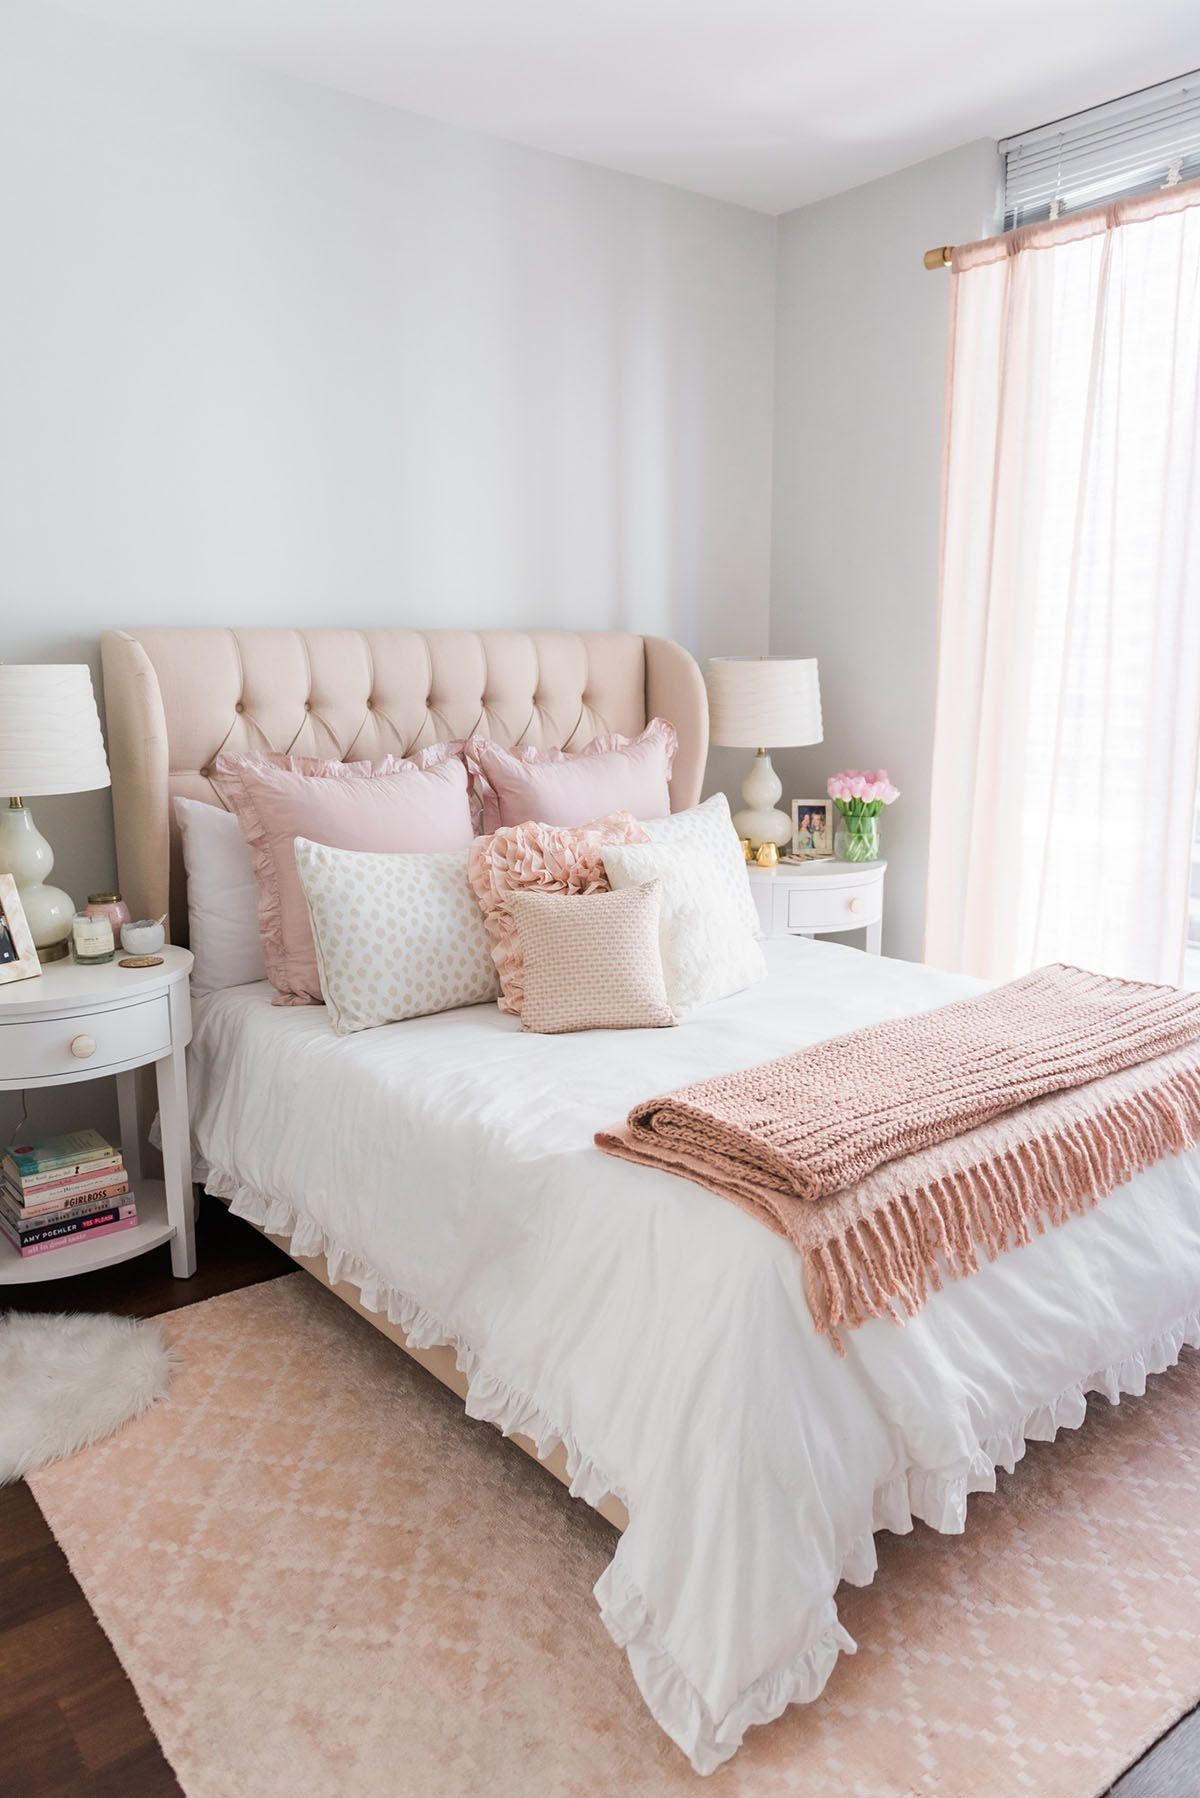 Bedroom interior furniture design blogger jessica sturdy of bows u sequins shares her chicago parisian